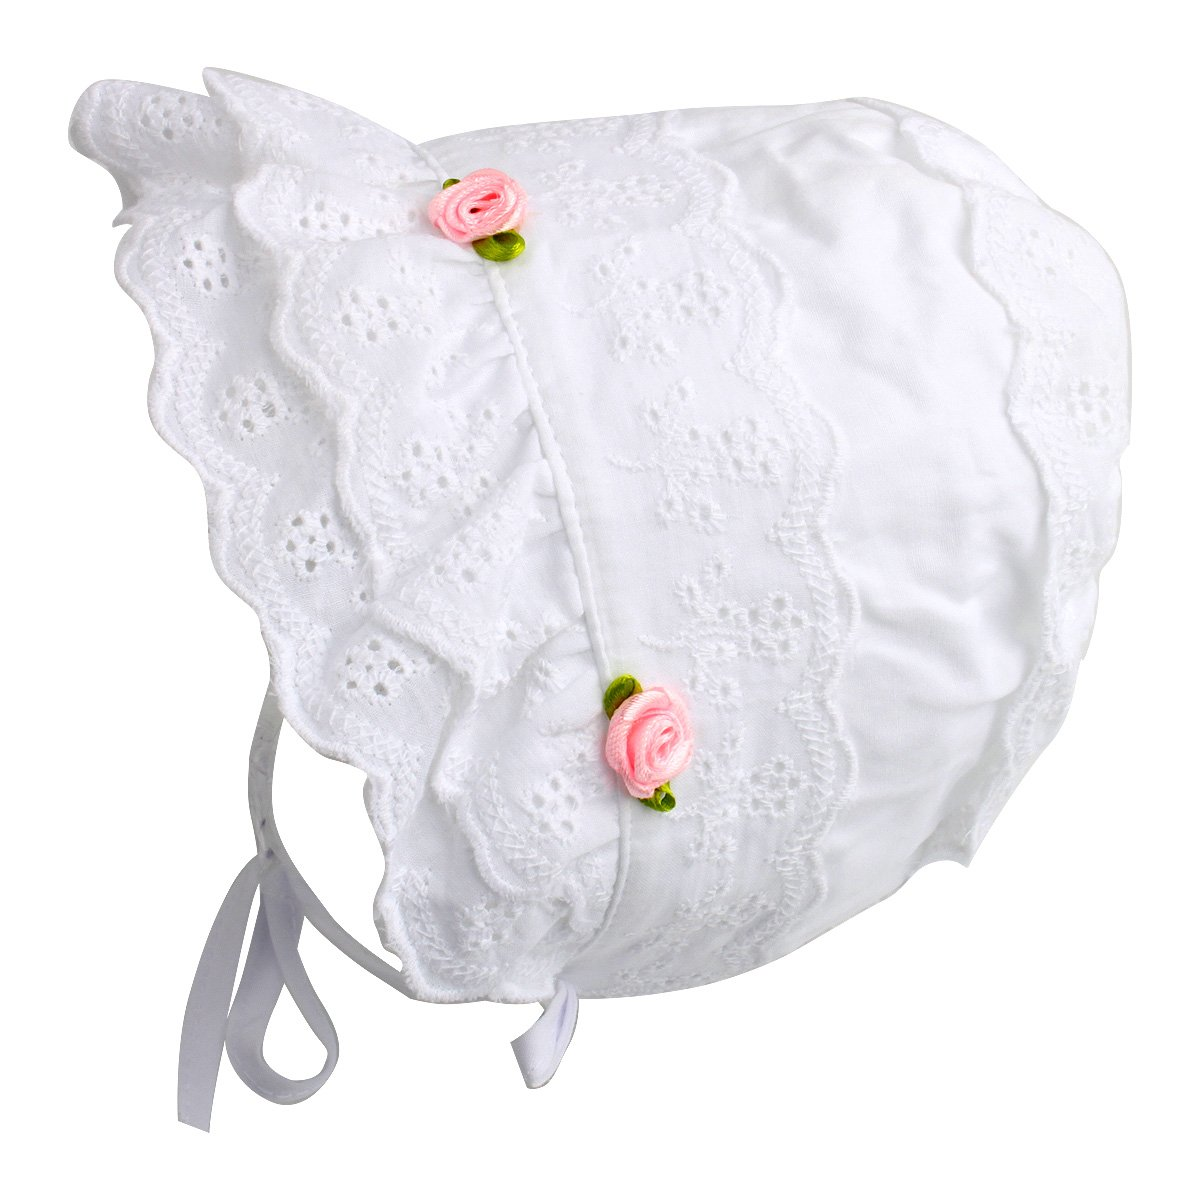 Slowera Cap Baby Girls 100% Cotton Double Brimmed Eyelet Lace Bonnet with Flowers (0-3 Months, White)